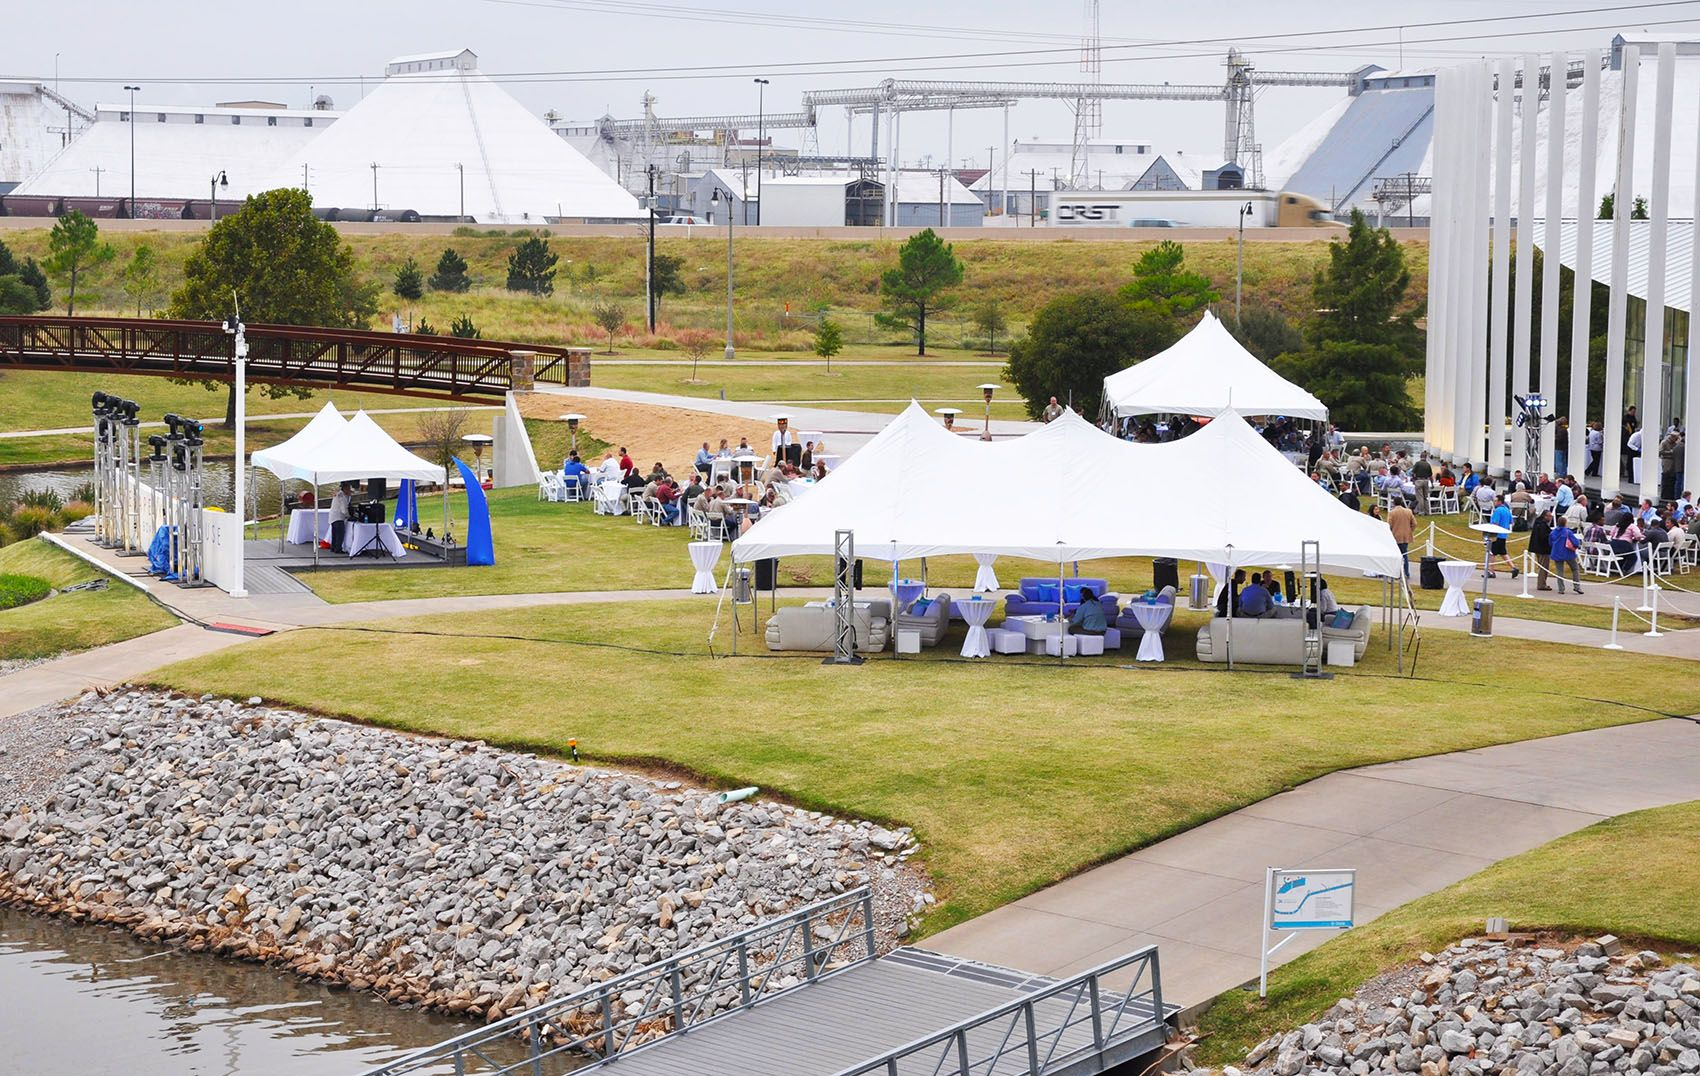 Tents By The Boathouse Okc Party Wedding Rentals